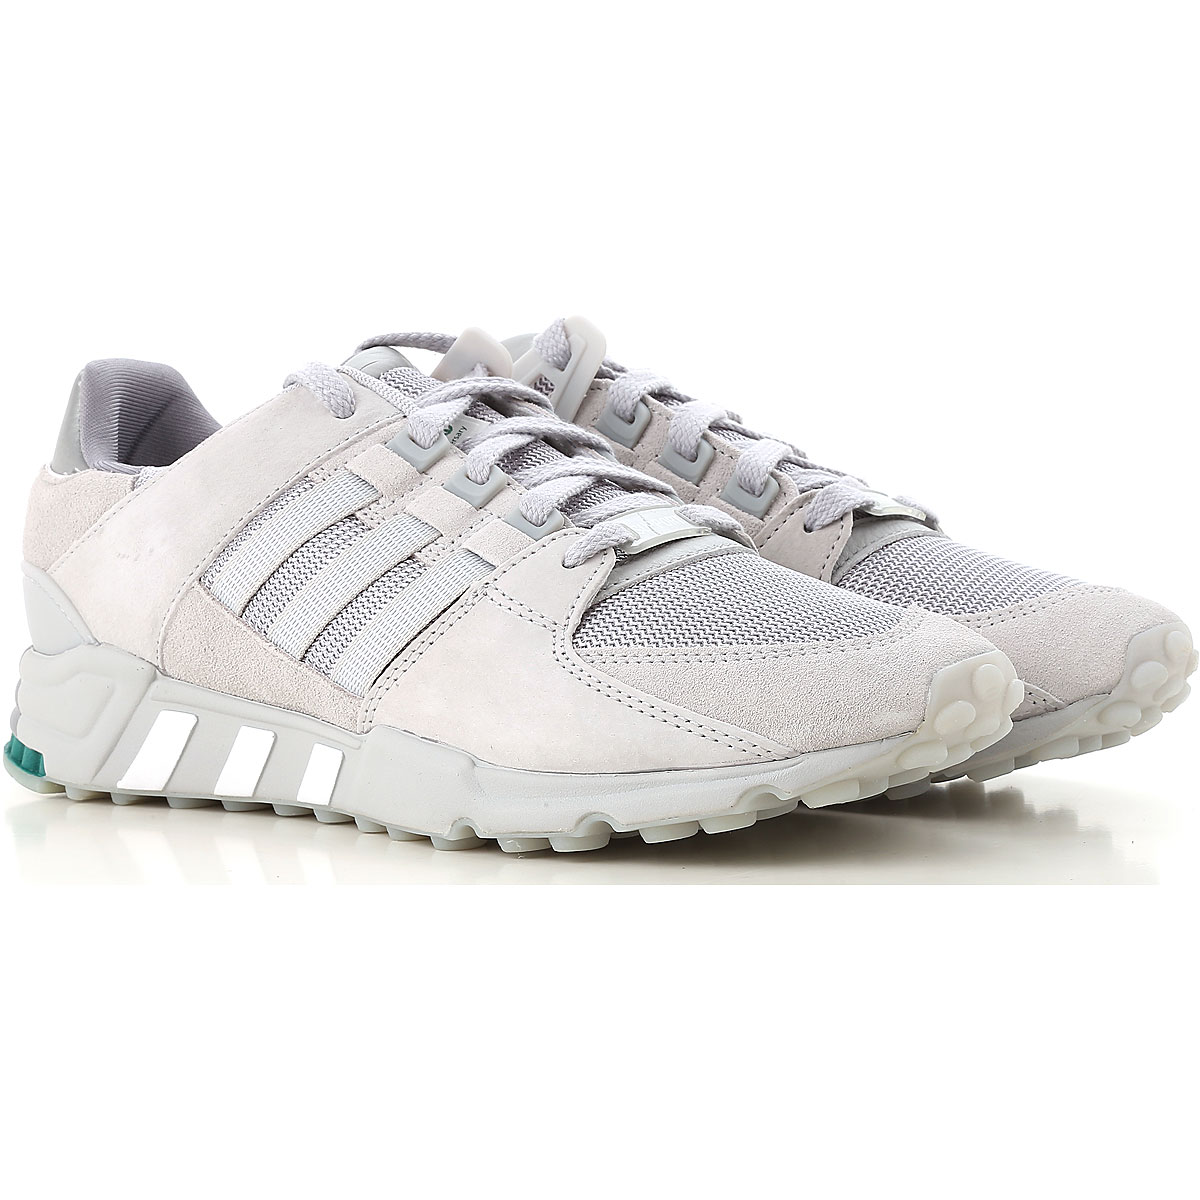 Image of Adidas Sneakers for Men, Grey, Leather, 2017, US 7 - UK 6 - EUR 40 US 7.5 - UK 7 - EU 40.5 US 7 - UK 6.5 - EU 40 US 9 - UK 8.5 - EU 42.5 US 9.5 - UK 9 - EU 43 US 10 - UK 9 1/2 - EU 44 US 11 - UK 10 1/2 - EU 45